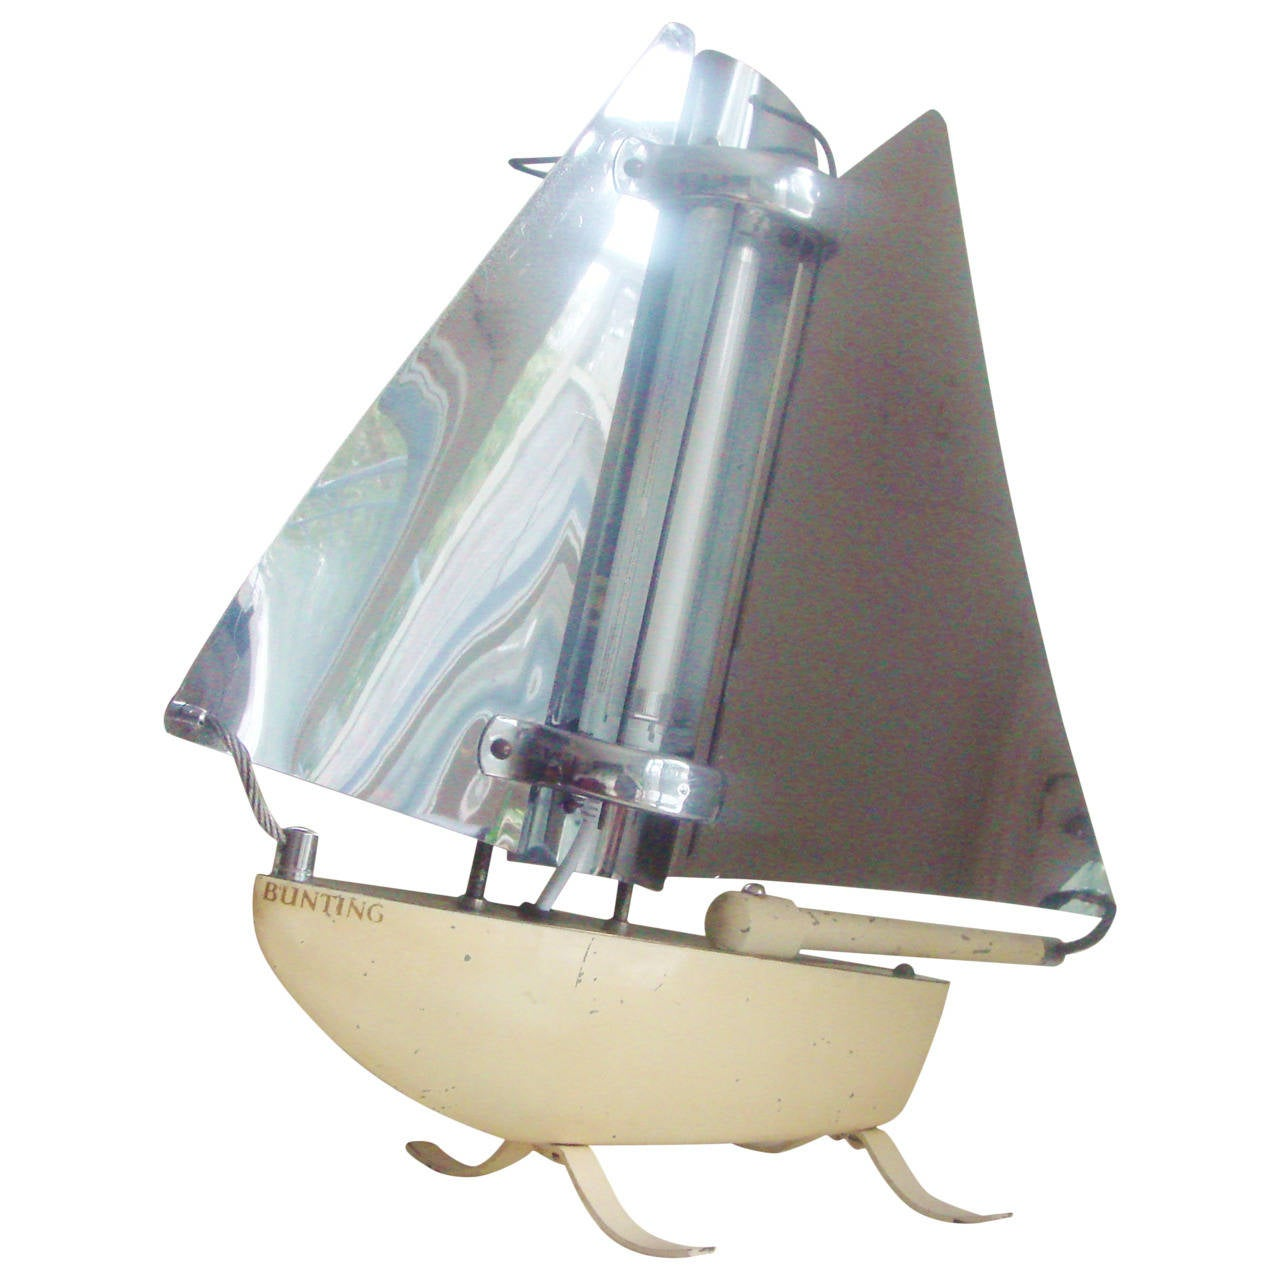 Iconic English Art Deco Bunting Figural Yacht Floor Lamp Conversion. For Sale